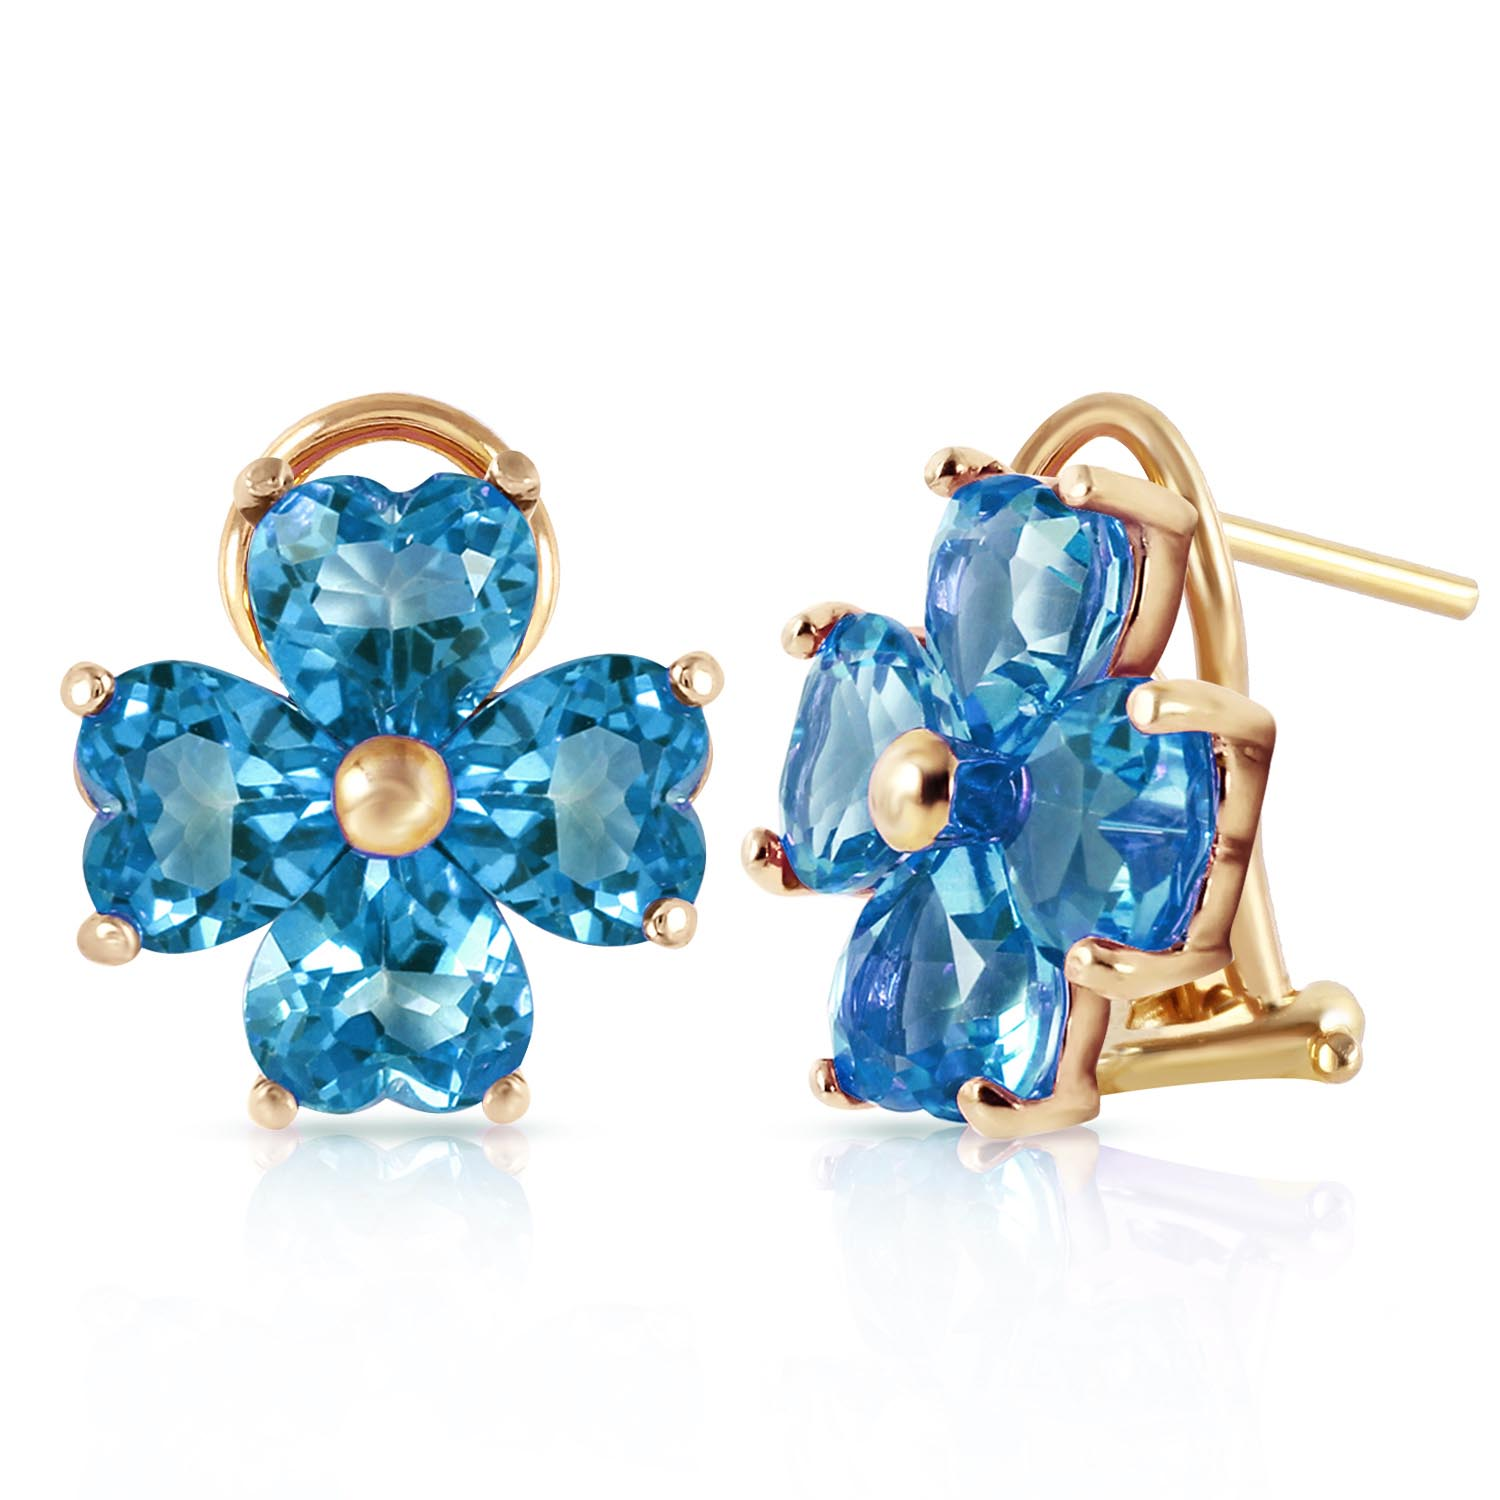 Blue Topaz Flower Heart Stud Earrings 7.6ctw in 9ct Gold